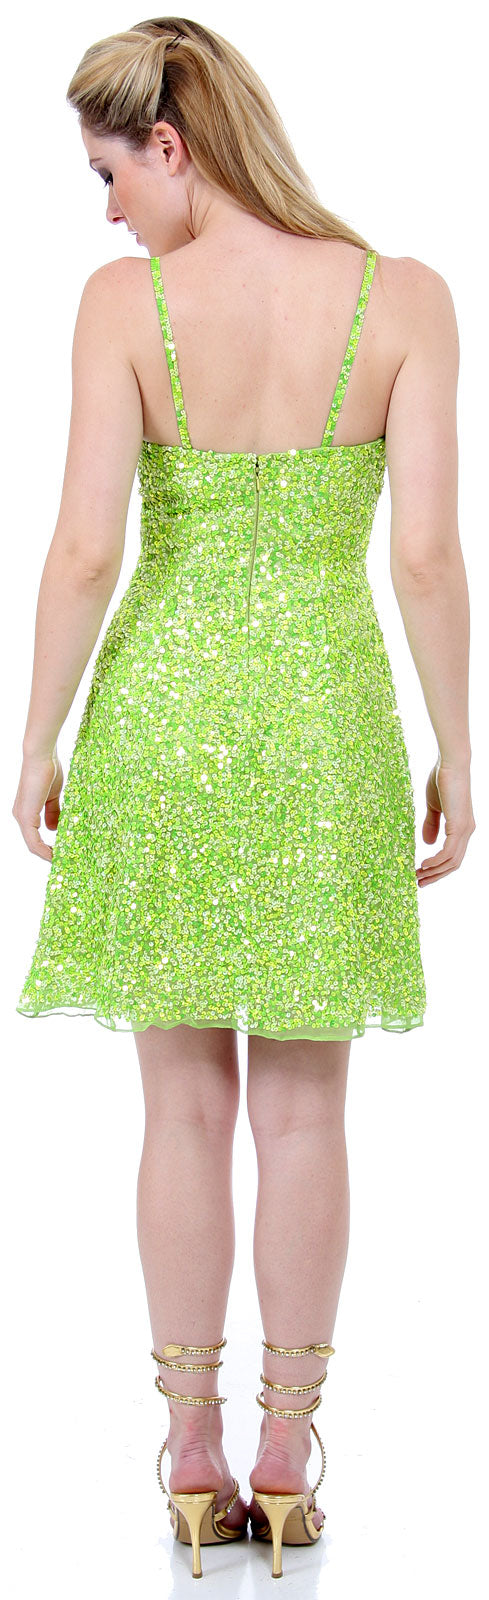 Back image of Short Sequin Spaghetti Strapped Party Dress